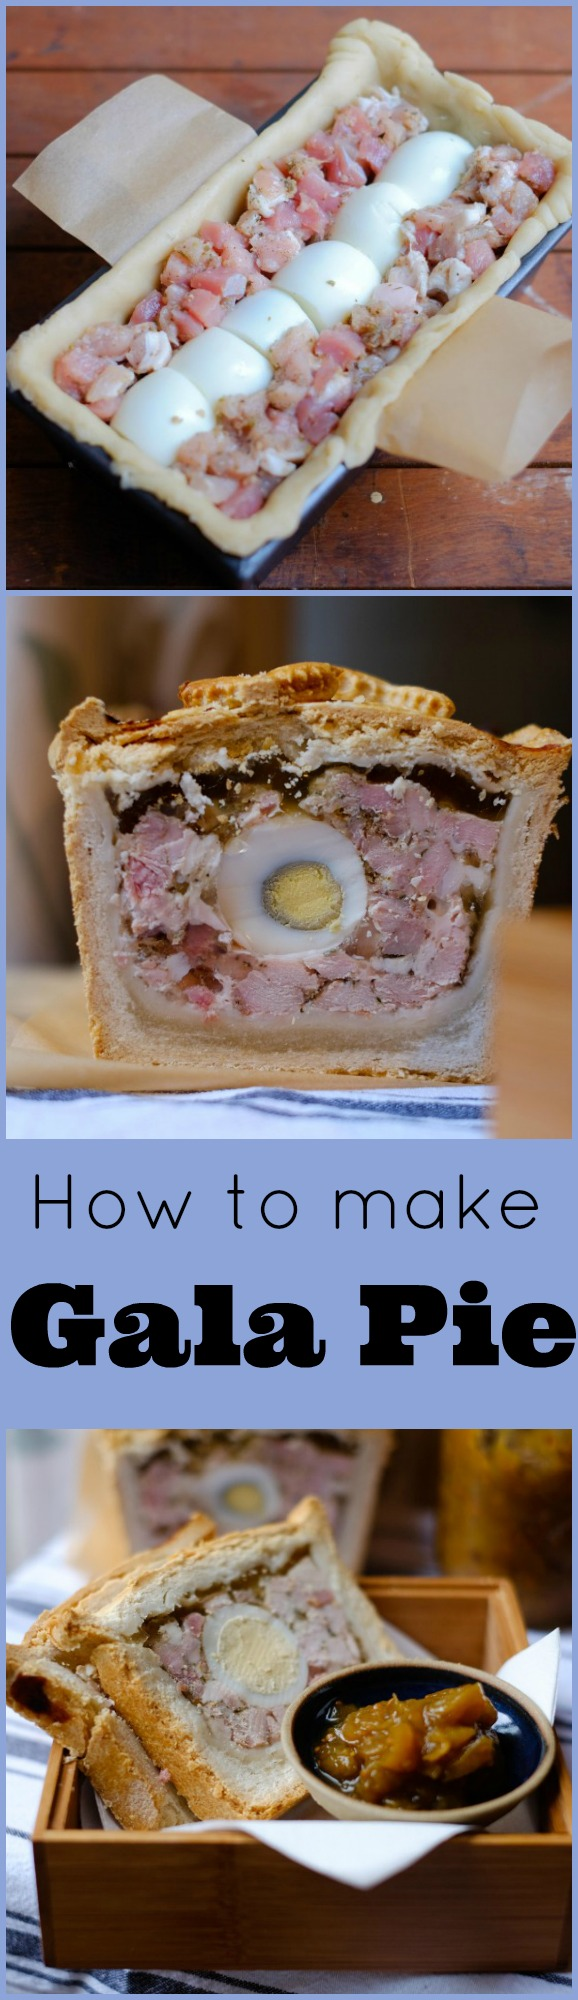 how to make gala pie the perfect picnic food patisserie